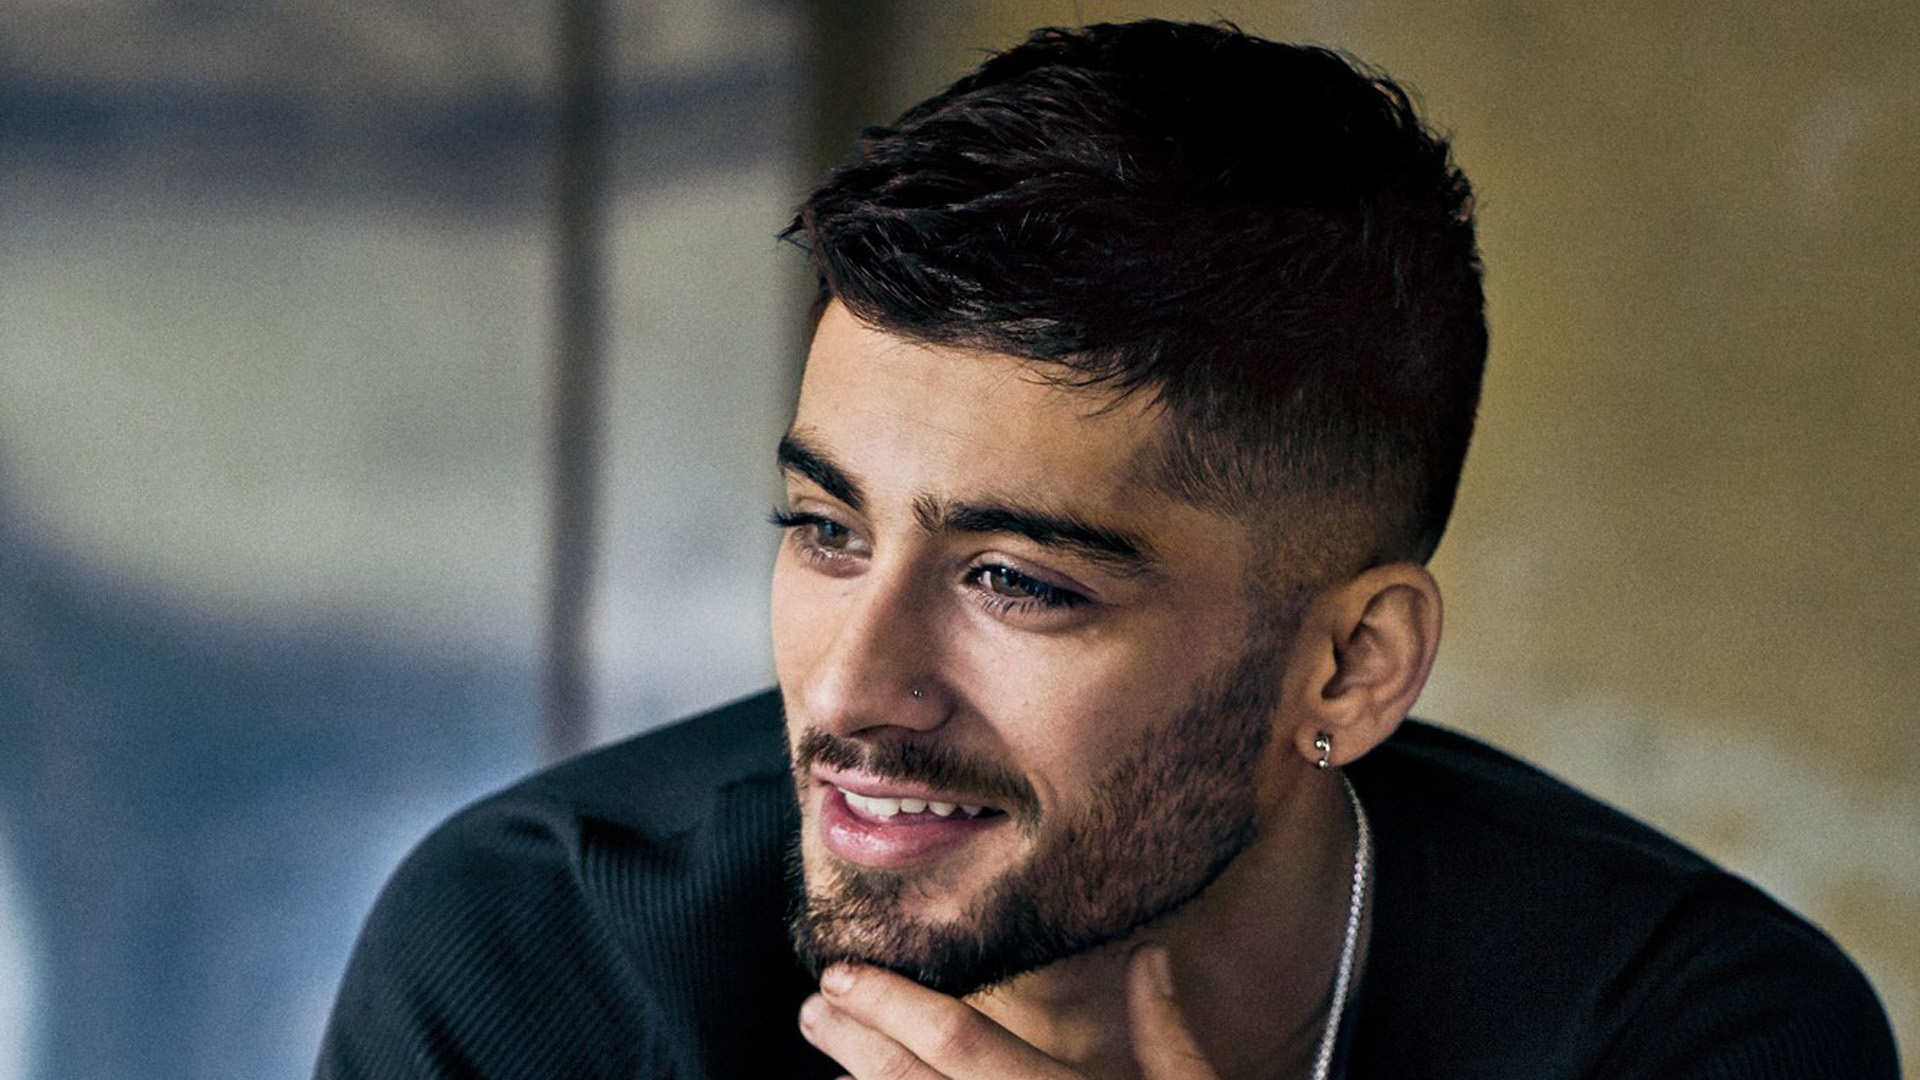 Zayn malik wallpapers images photos pictures backgrounds zayn malik gq style 0816 07 altavistaventures Choice Image